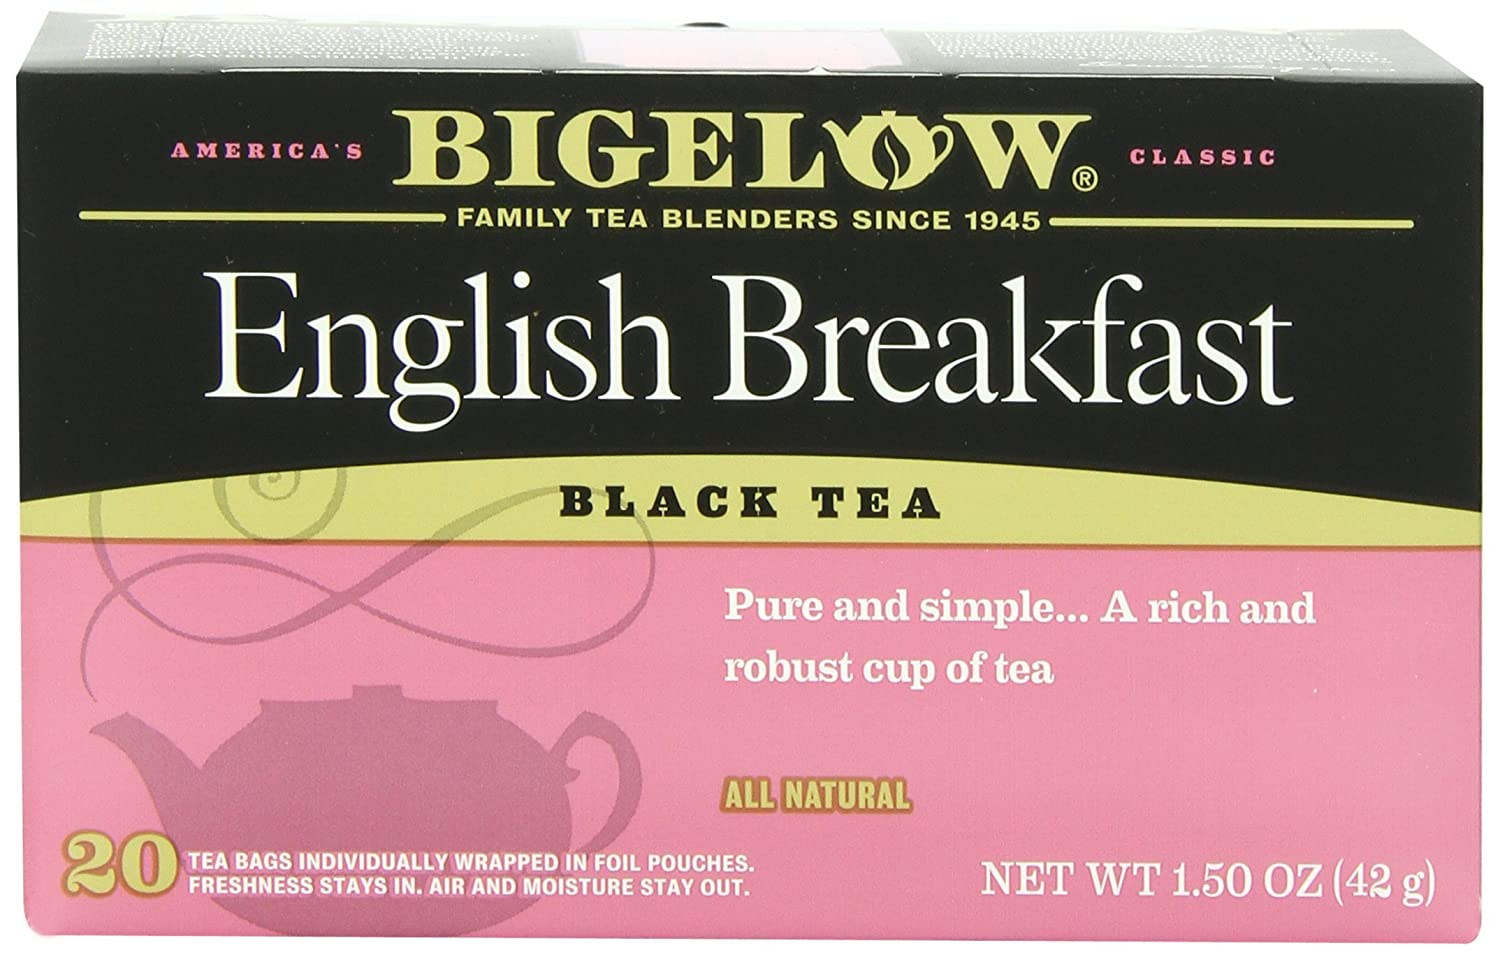 Bigelow Cinnamon Stick Black Tea Bags 20-Count Boxes (Pack of 6) Caffeinated Individual Black Tea Bags, for Hot Tea or Iced Tea, Drink Plain or Sweetened with Honey or Sugar 072310001787